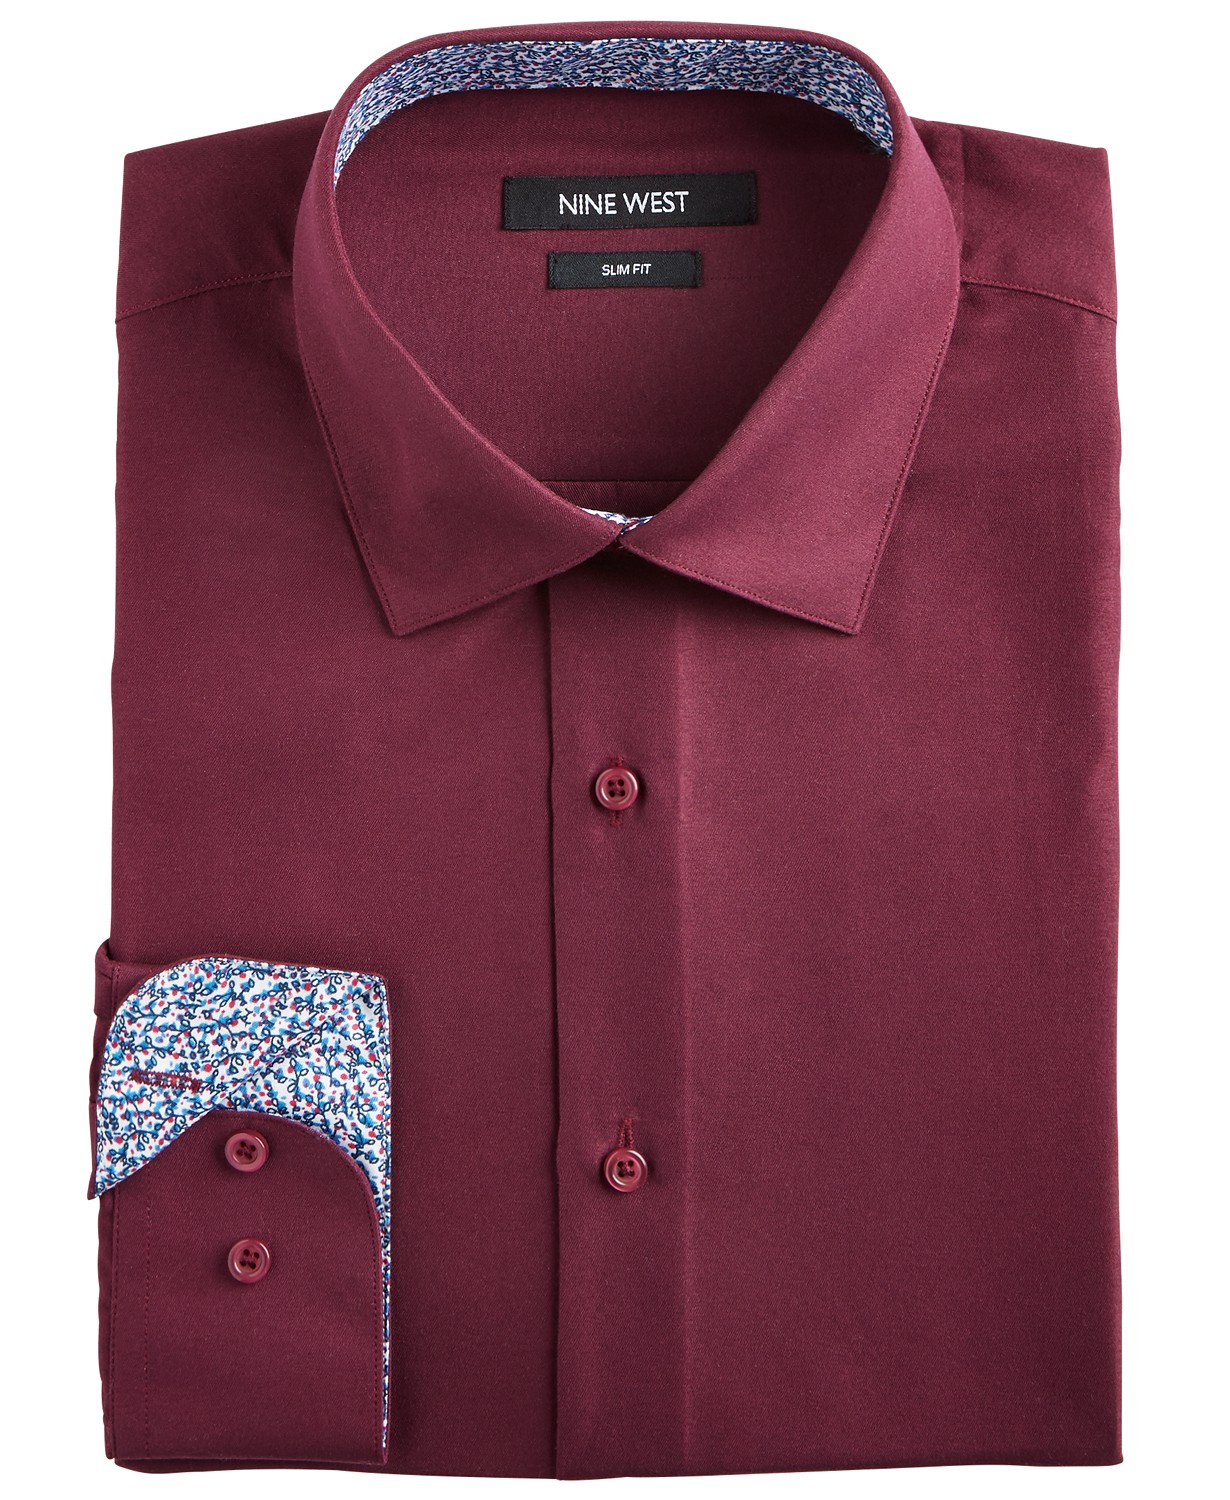 (64% OFF Deal) Men's Slim-Fit Wrinkle-Free Performance Stretch Burgundy Dress Shirt $17.99